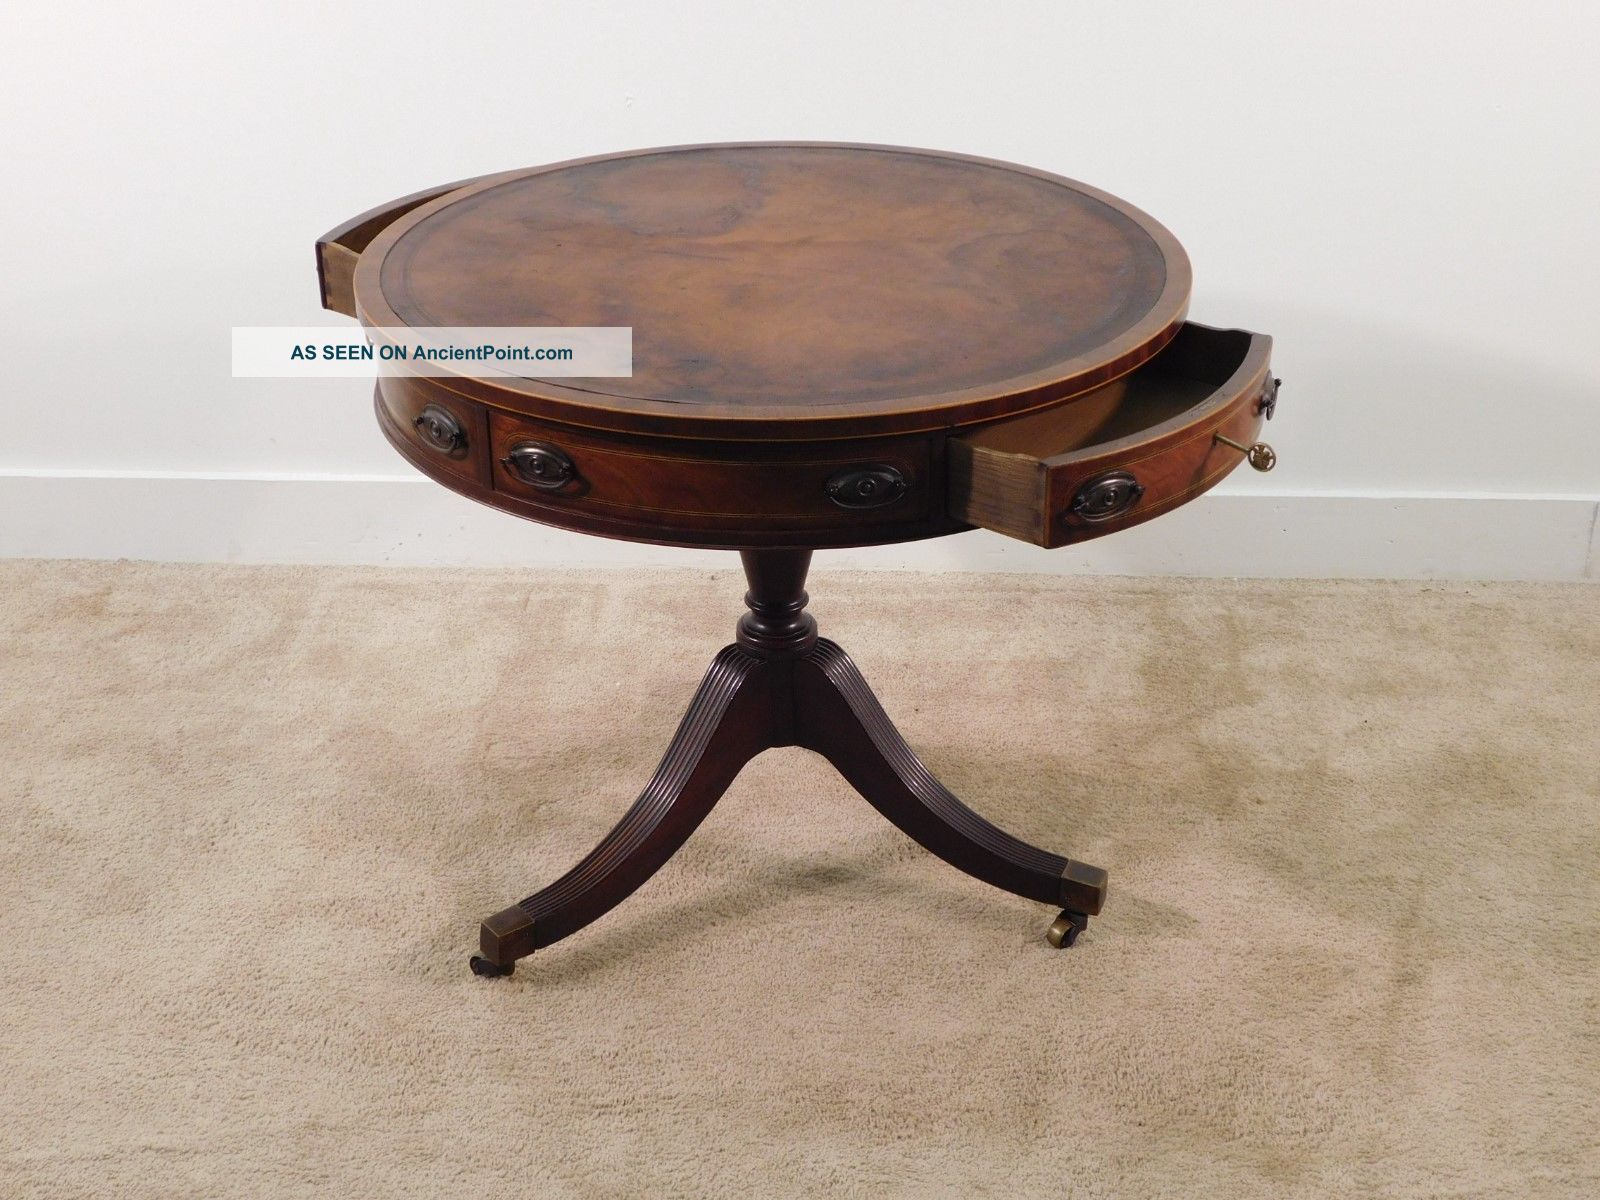 Baker Furniture Company Leather Top Rotating Drum Table W Two Locking Drawers Post-1950 photo